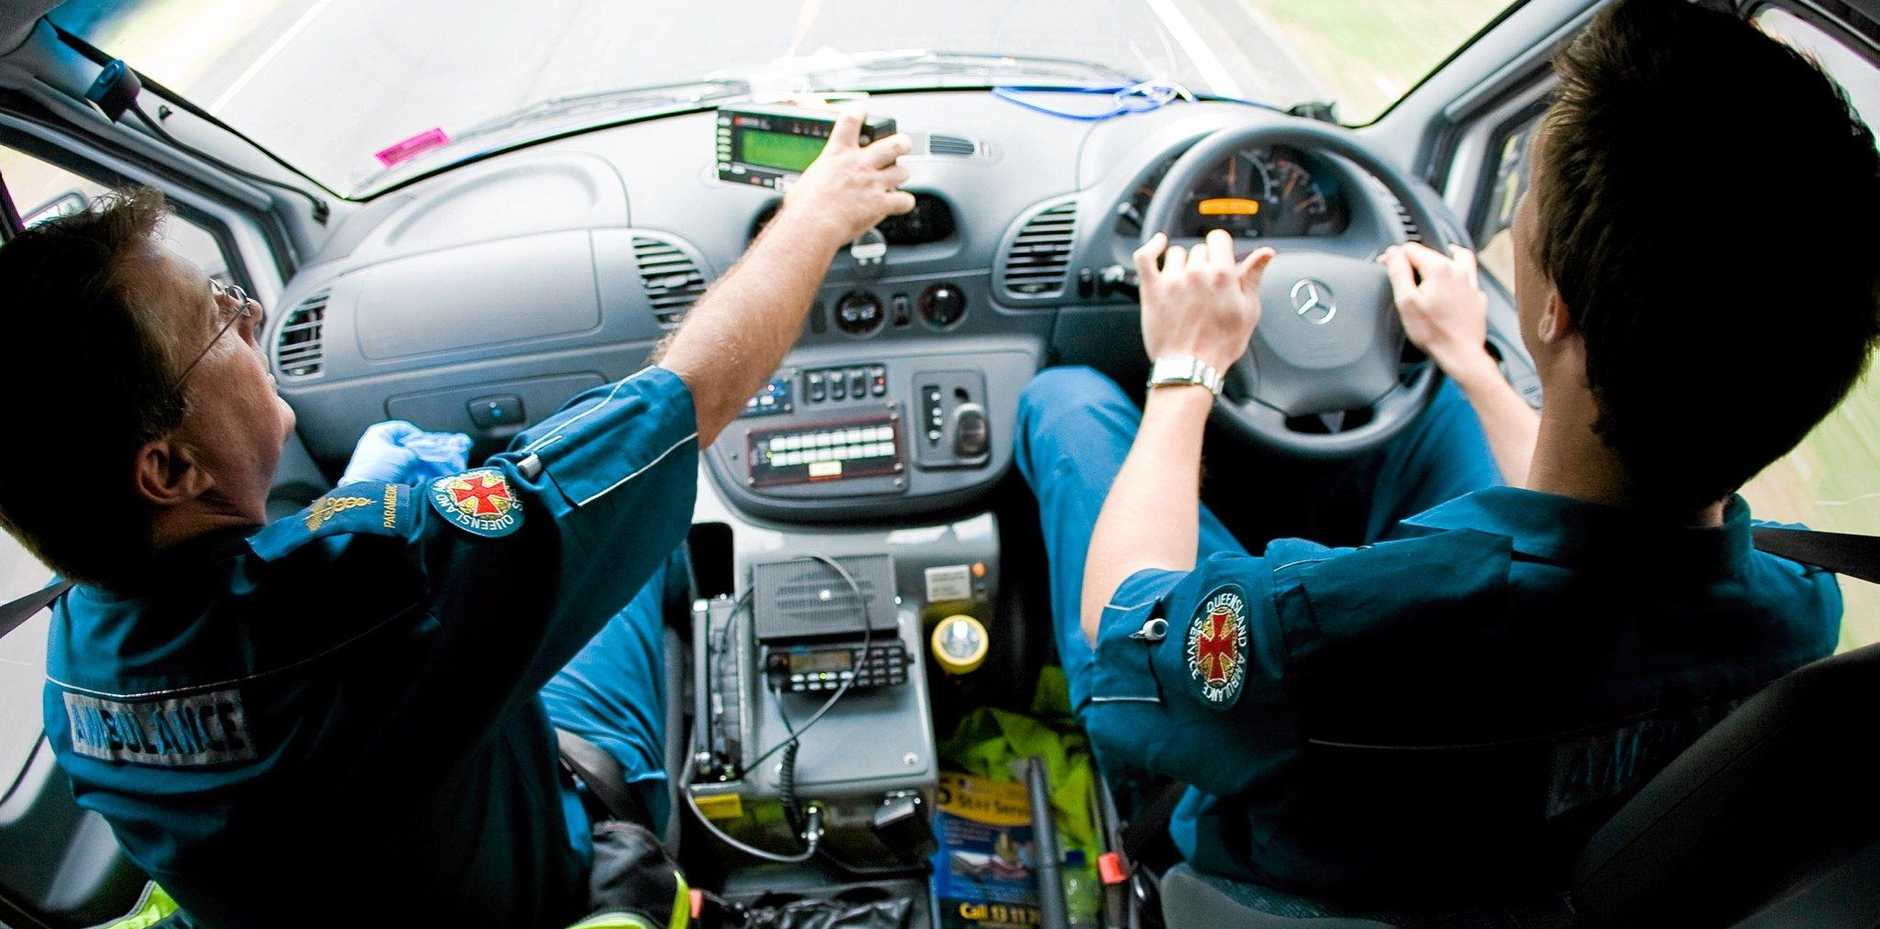 ON ALERT: In the wake of assaults, paramedics have been retrained in how to deal with volatile situations.